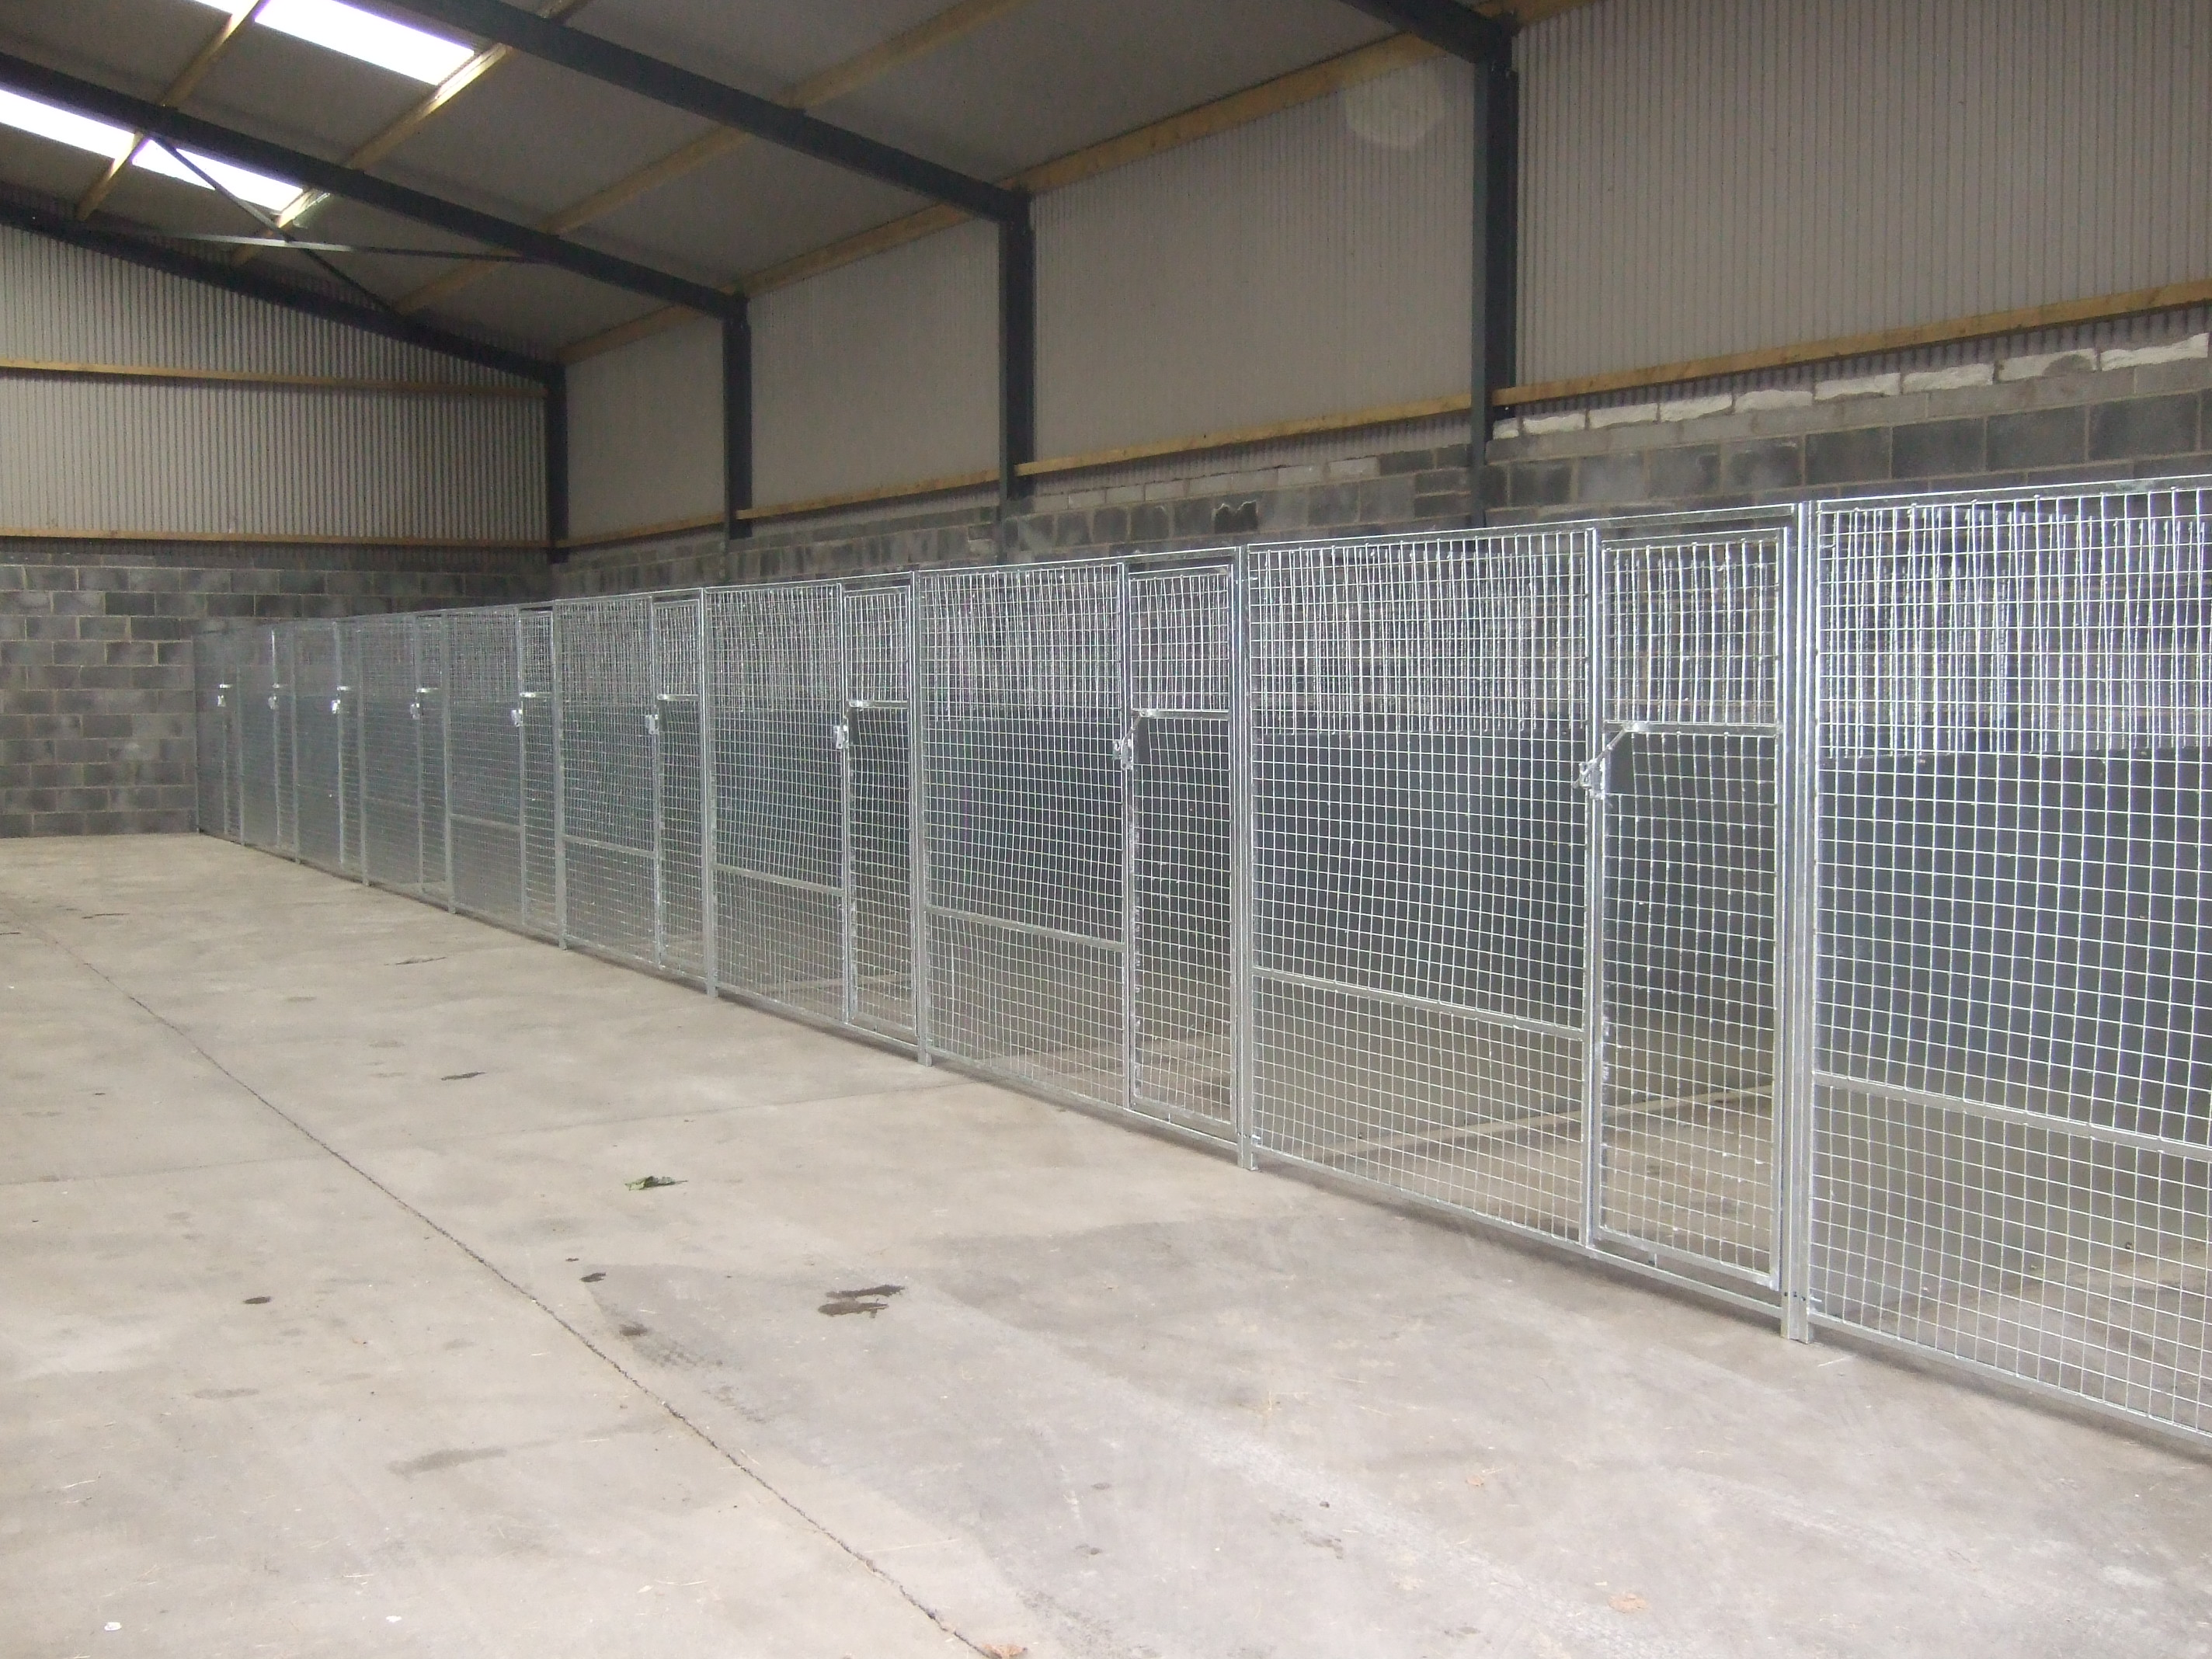 Dog Pens BOARDING KENNELS